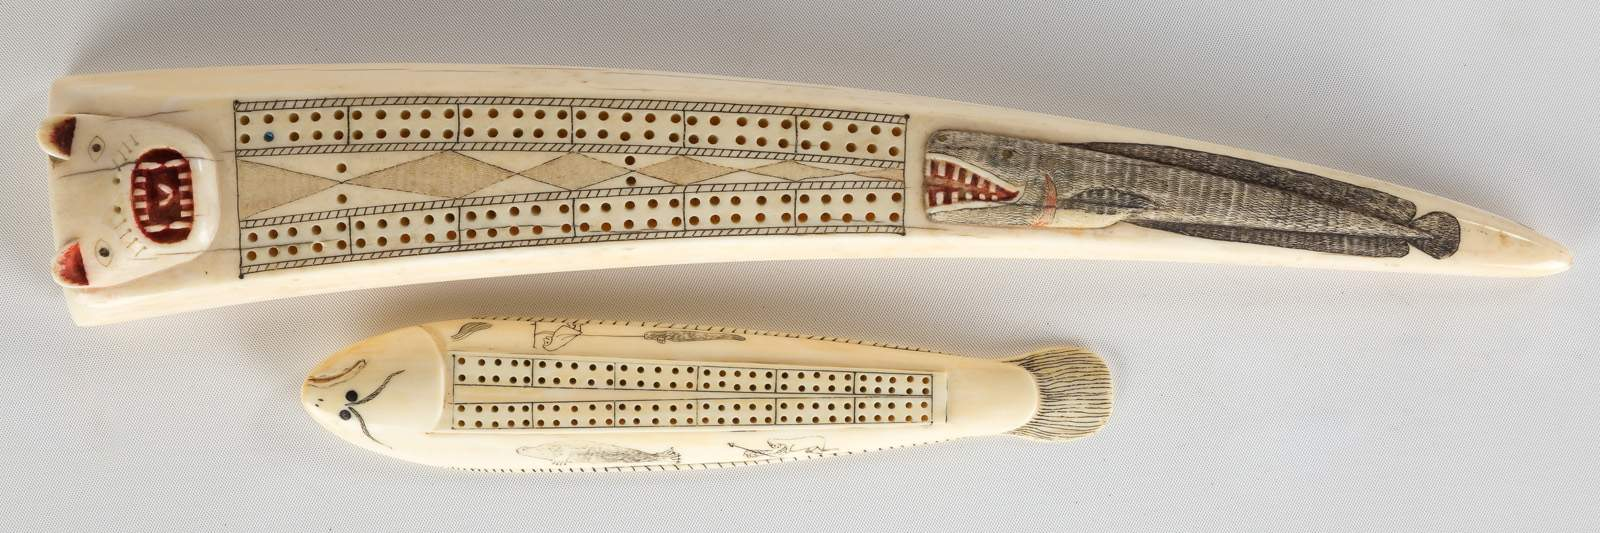 Inuit Walrus Tusk Cribbage Boards Cottone Auctions